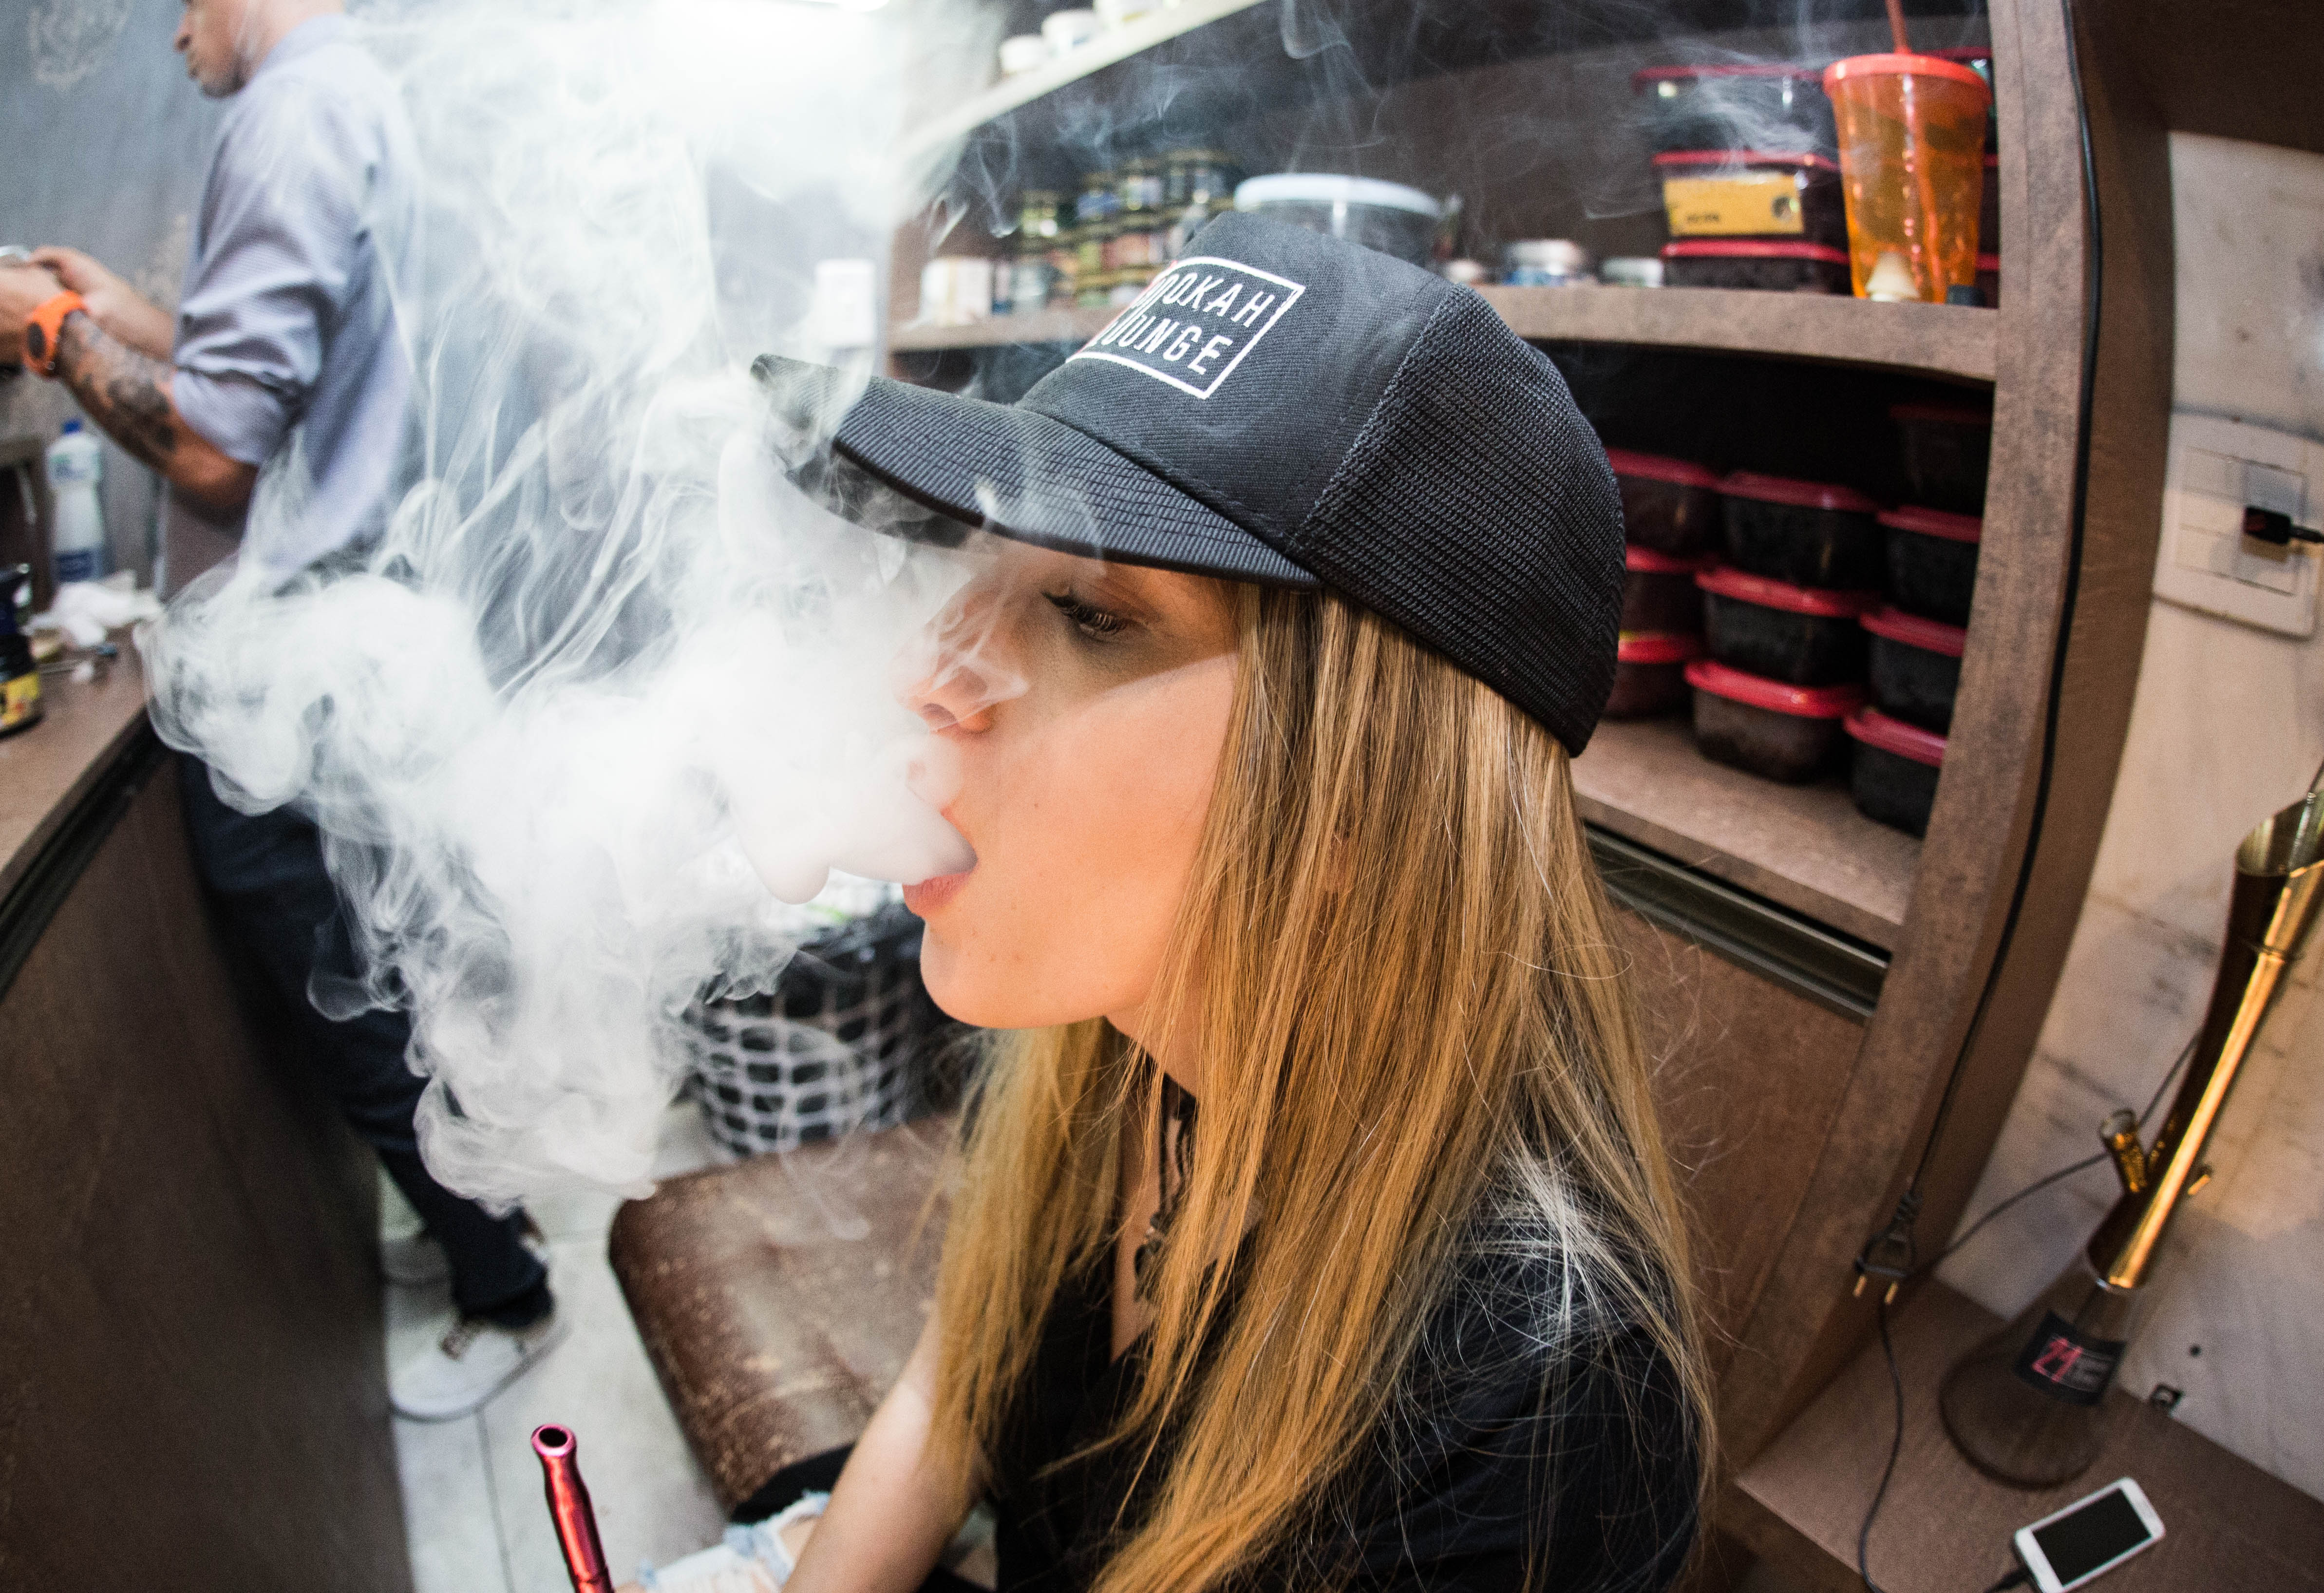 Will vaping in the workplace increase?